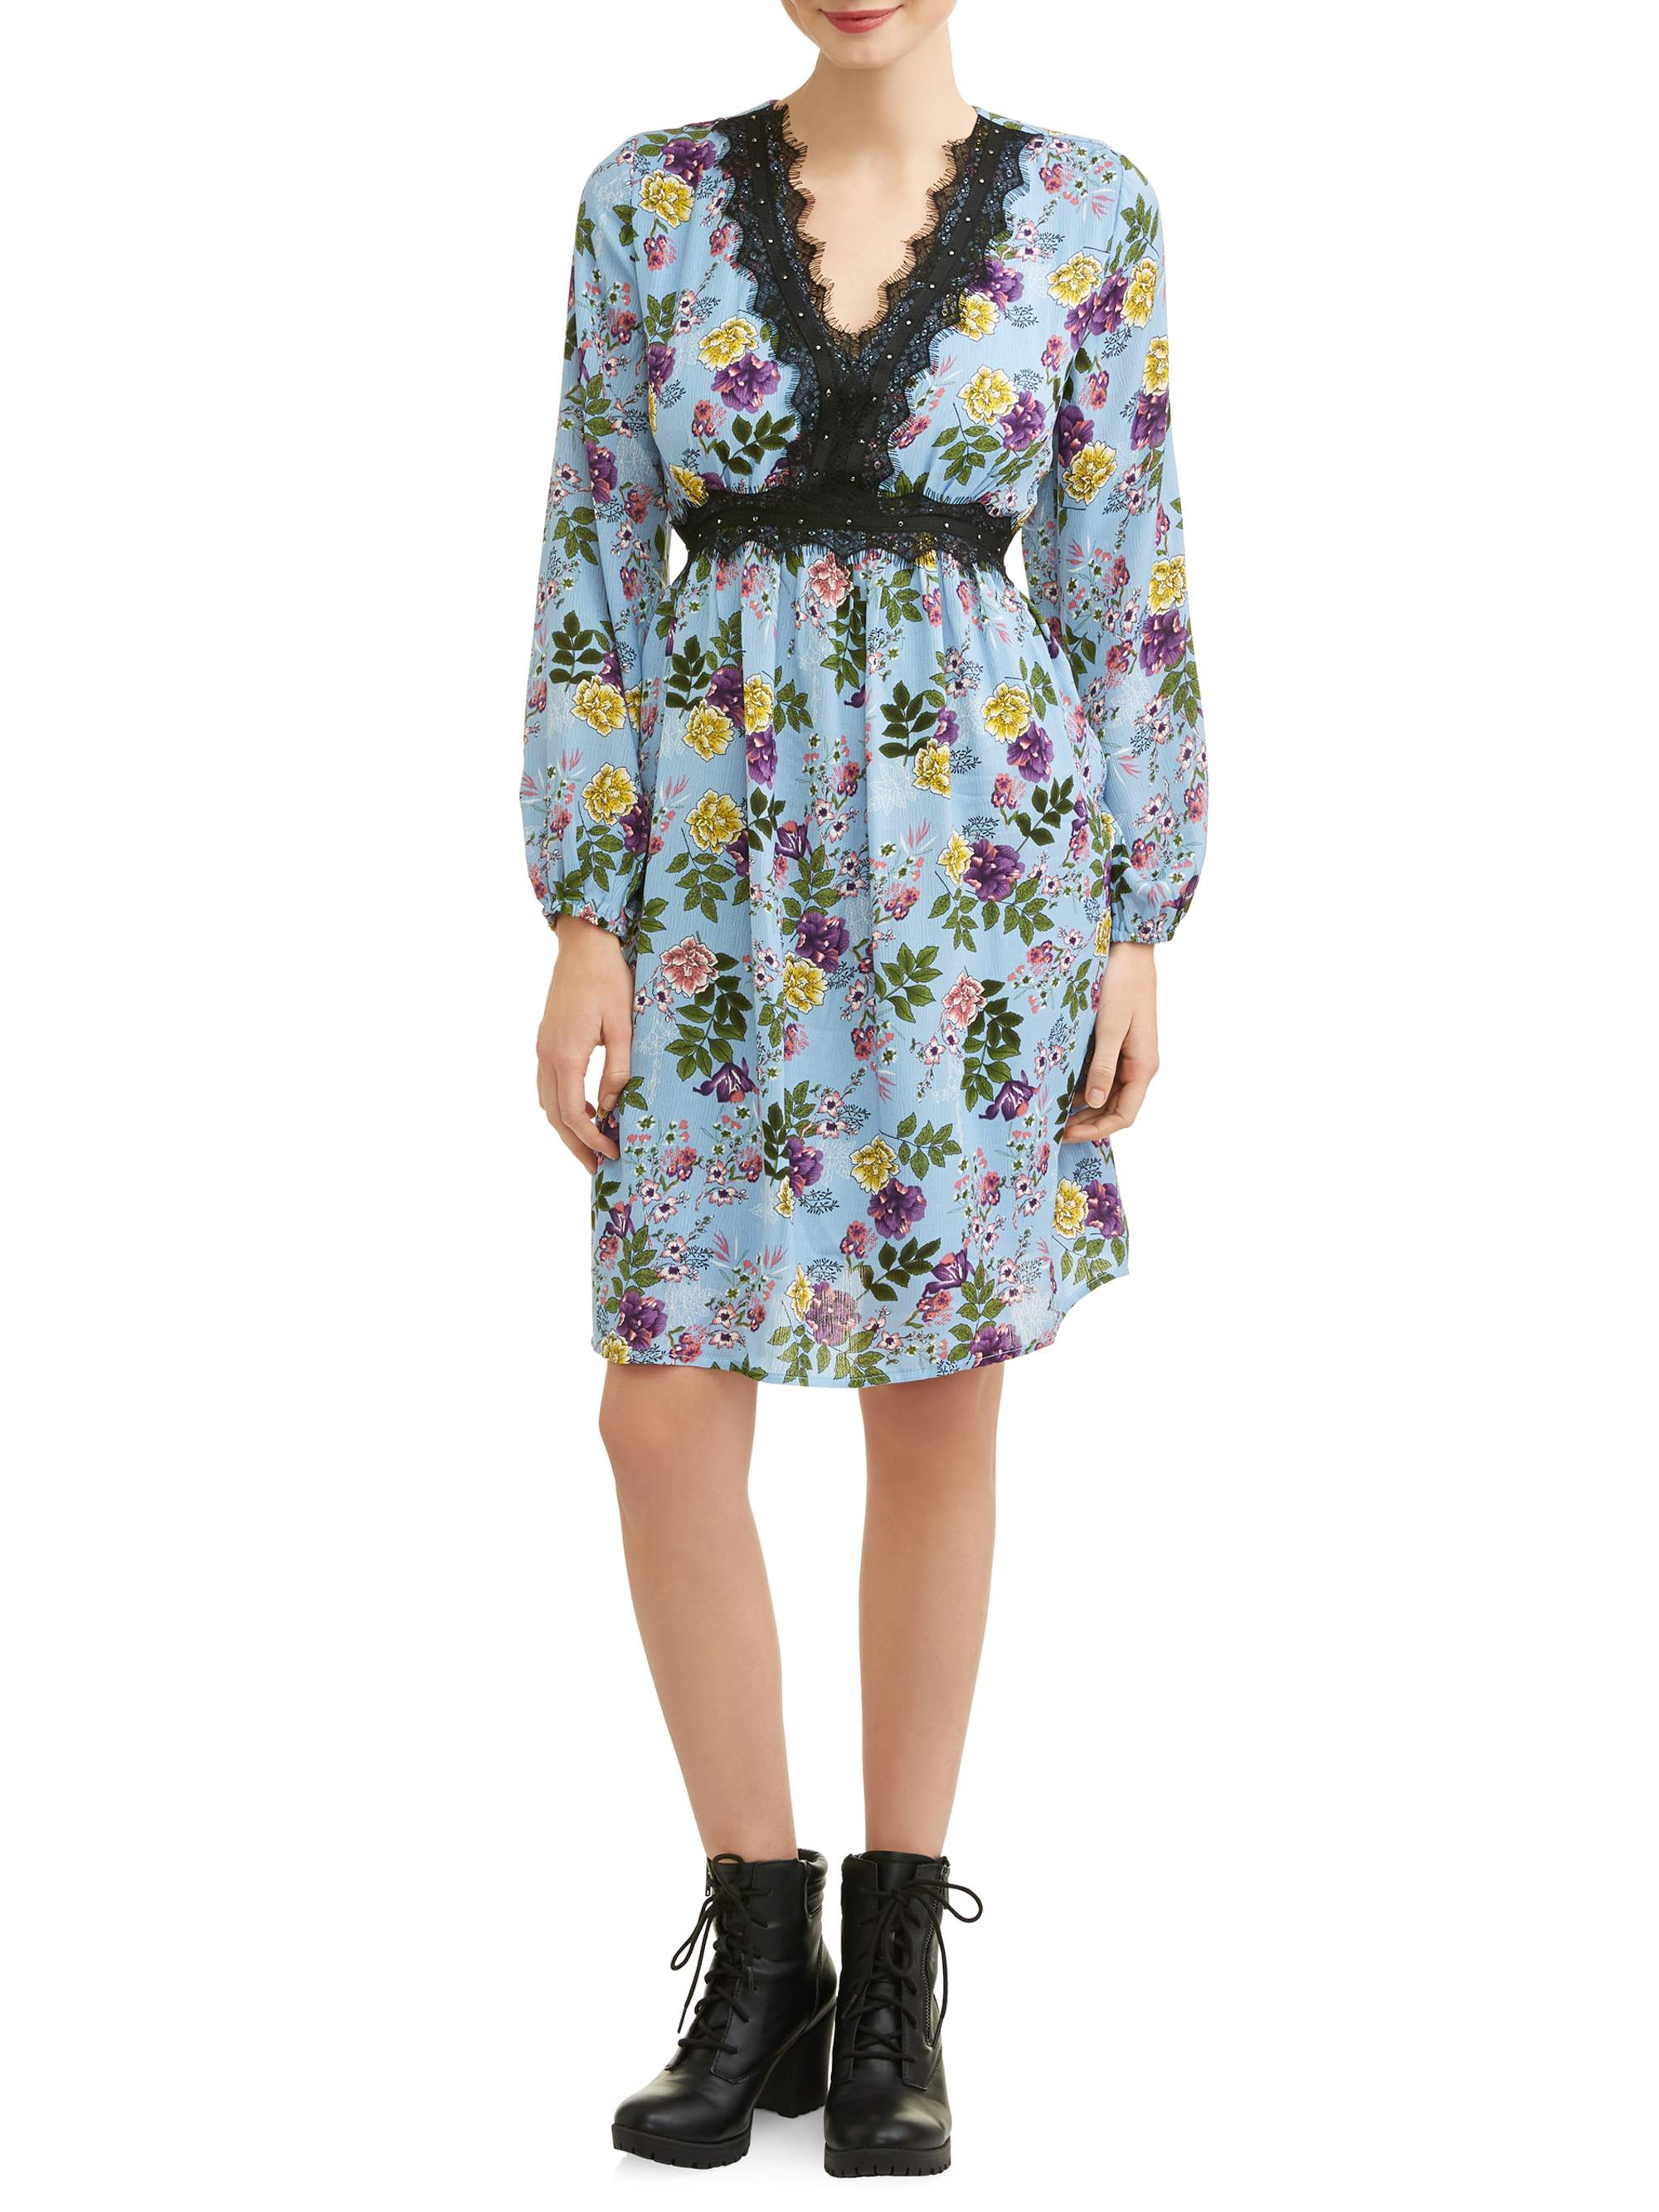 Juniors Patterned Dress with Lace Detail